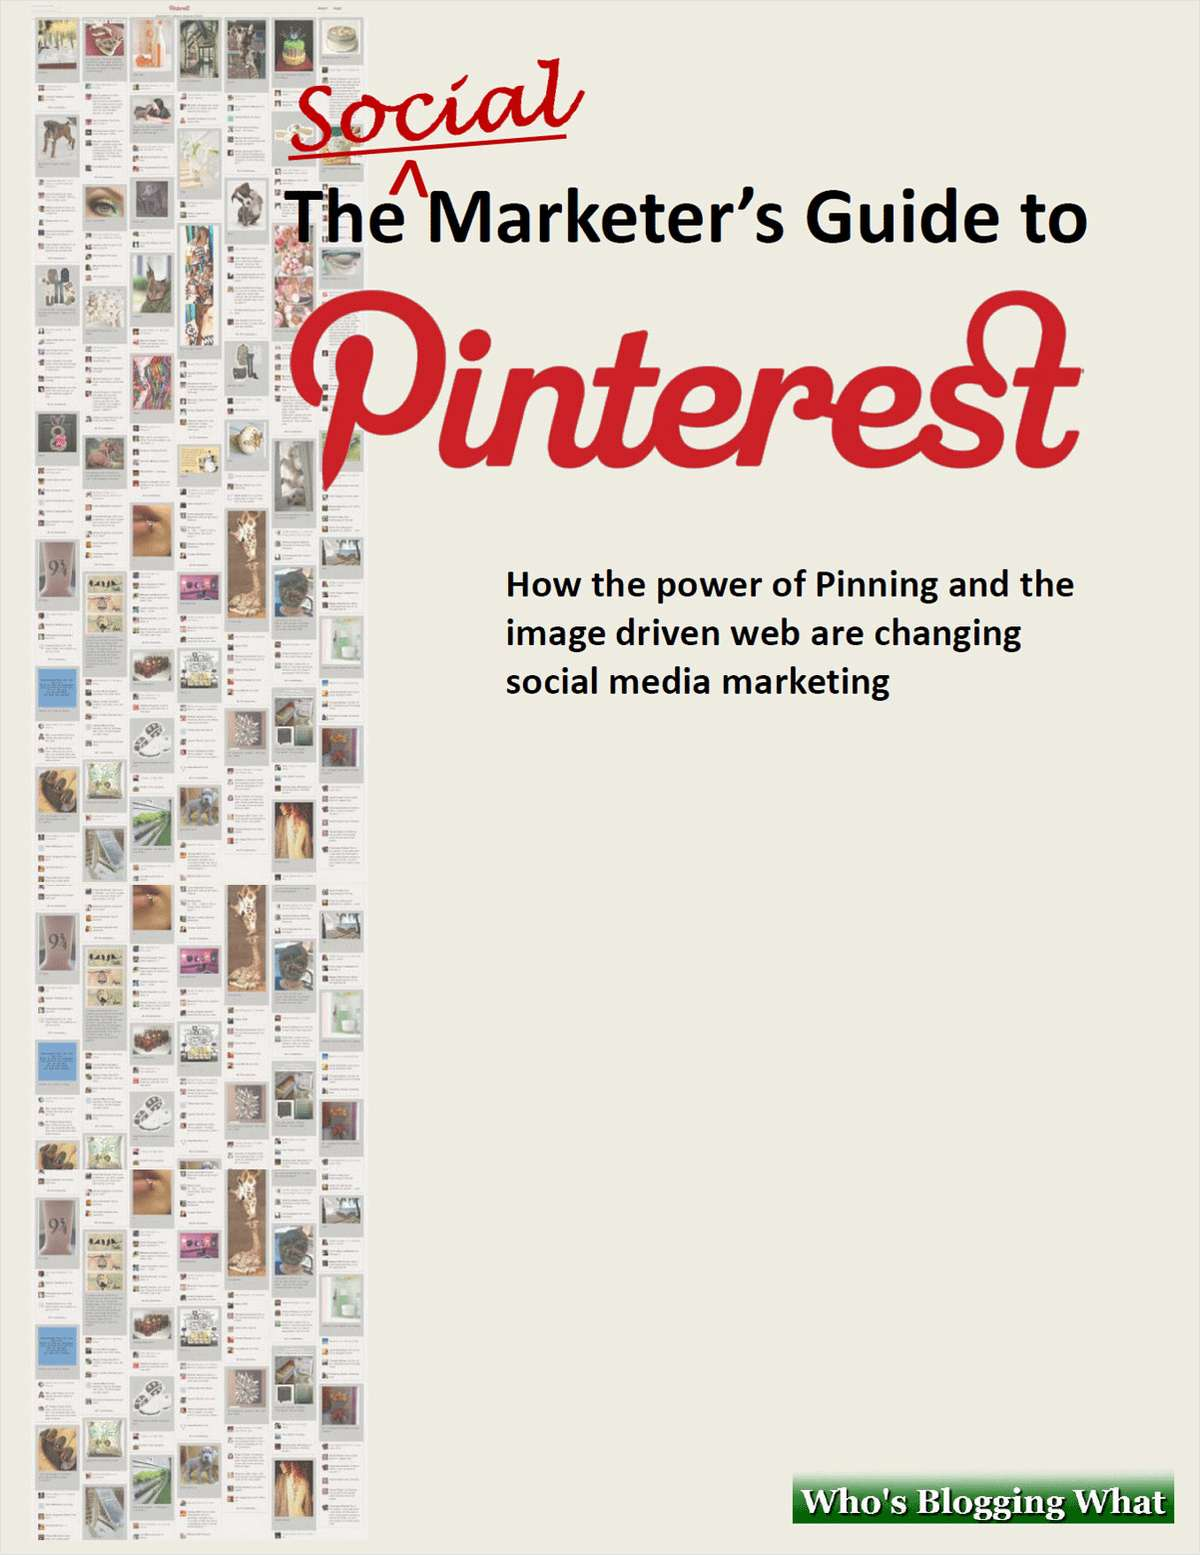 The Essentials of Marketing Kit - Includes the Free Social Marketer's Guide to Pinterest